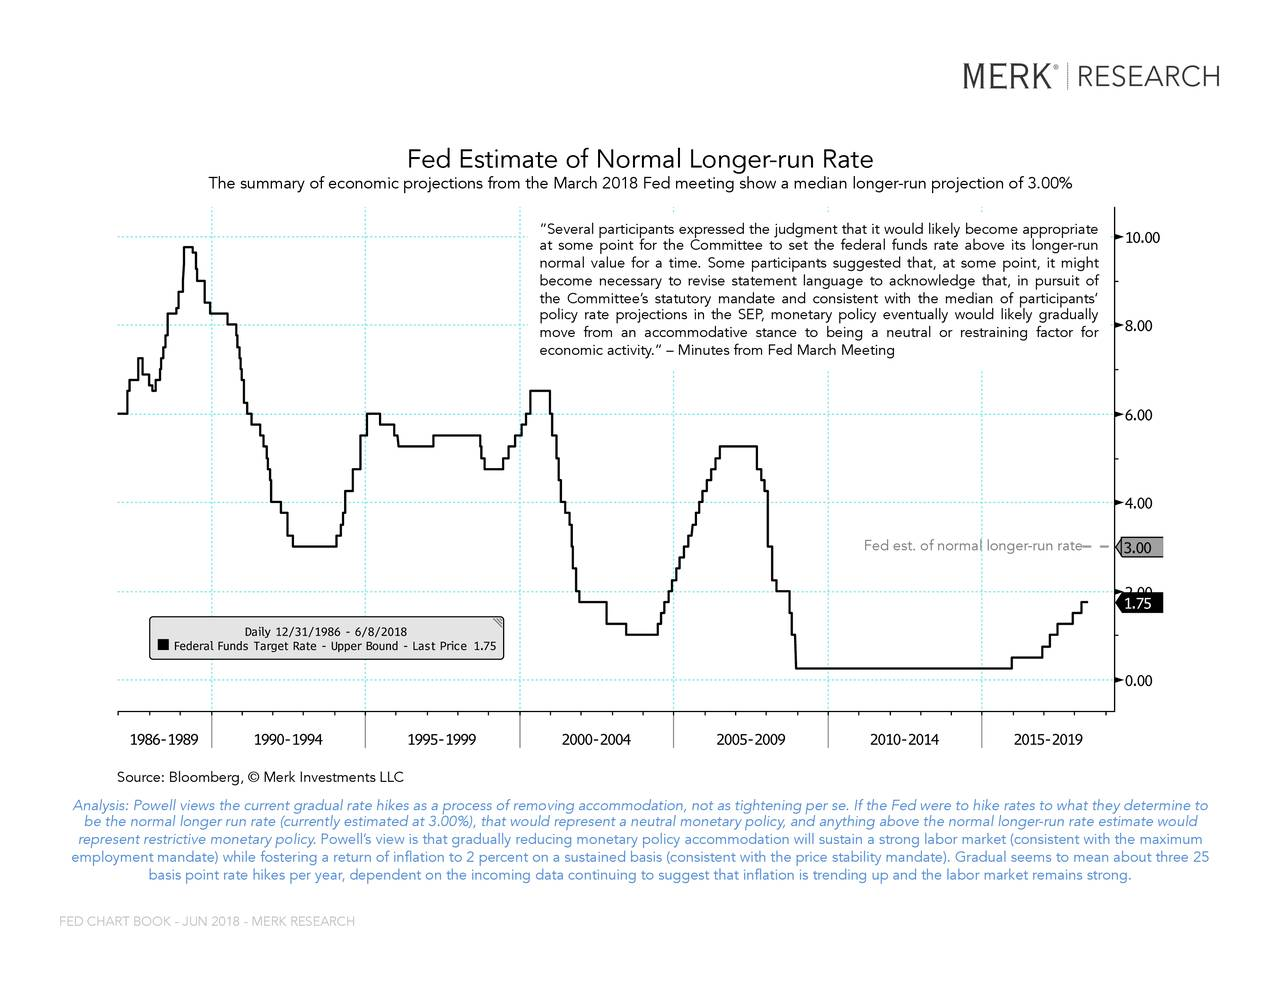 """FDTR Index (Federal Funds Target Rate - ... Fed Estimate of Normal Longer-run Rate The summary of economic projections from the March 2018 Fed meeting show a median longer-run projection of 3.00% """"Several participants expressed the judgment that it would likely become appropriate at some point for the Committee to set the federal funds rate above its longer-run normal value for a time. Some participants suggested that, at some point, it might become necessary to revise statement language to acknowledge that, in pursuit of the Committee's statutory mandate and consistent with the median of participants' policy rate projections in the SEP, monetary policy eventually would likely gradually move from an accommodative stance to being a neutral or restraining factor for economic activity."""" – Minutes from Fed March Meeting Fed est. of normal longer-run rate TSource: Bloomberg, © Merk Investments LLC in any way. The BLOOMBERG PROFESSIONAL service and BLOOMBERG Data are owned and distributed locally by Bloomberg Finance LP (""""BFLP"""") and its subsidiaries in all jurisdictions other than Argentina, Bermuda, China, India, Japan and Korea (the (""""BFLP do not provide investment advice, and nothing herein shall constitute an offer of financial instruments by BFLP, BLP or their affiliates.upport and service for the Services and distributes the Services either directly or through a non-BFLP subsidiary in the BLP Countries. BFLP, BLP and their affiliates Analysis: Powell views the current gradual rate hikes as a process of removing accommodation, not as tightening per se. If the Fed were to hike rates to what they determine to be tBloomberg ®ong06/08/2018 14:00:14tly estimated at 3.00%), that would represent a neutral monetary policy, and anything above the normal longer-run rate estimate would 1 represent restrictive monetary policy. Powell's view is that gradually reducing monetary policy accommodation will sustain a strong labor market (consistent with the maximum employment mandate)"""